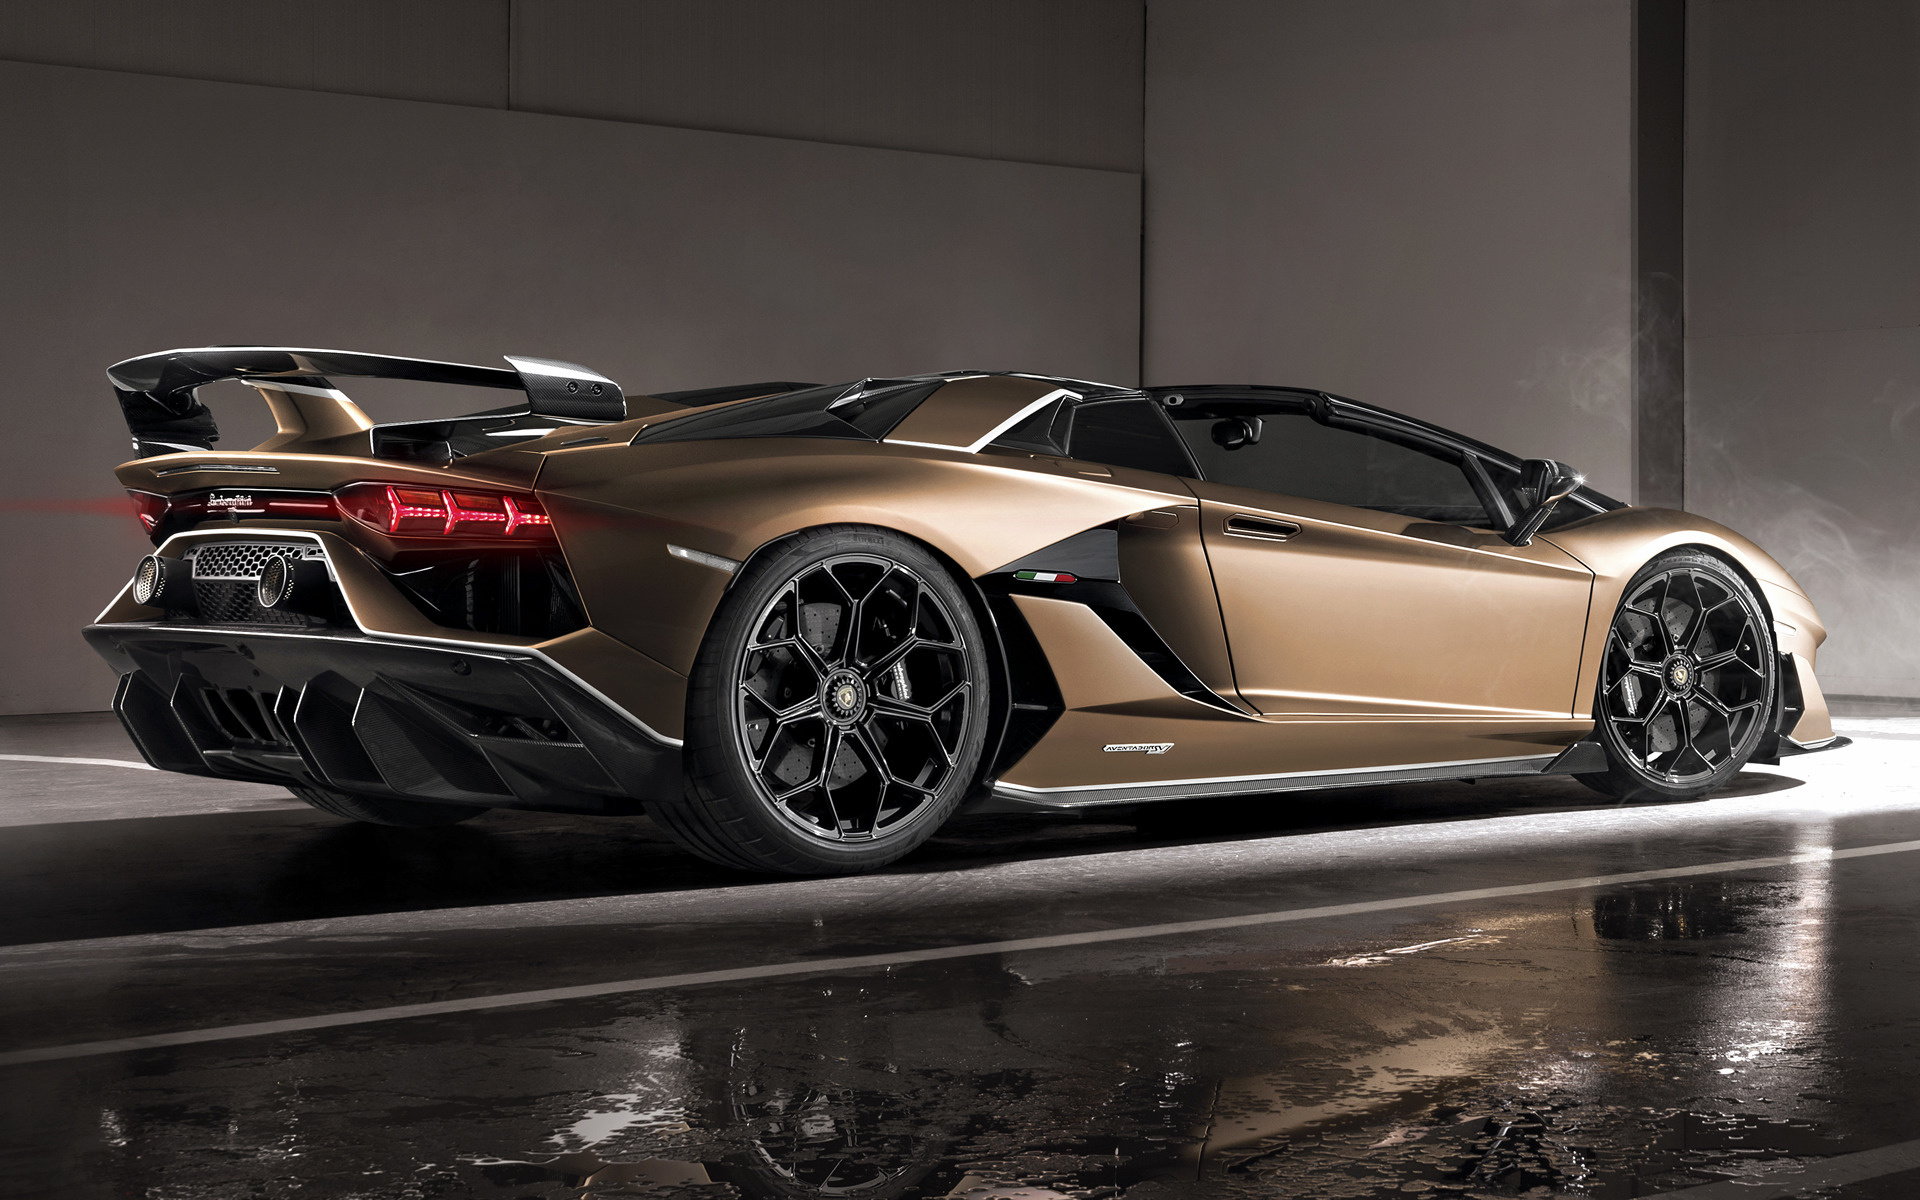 2019 Lamborghini Aventador SVJ Roadster - Wallpapers and ...